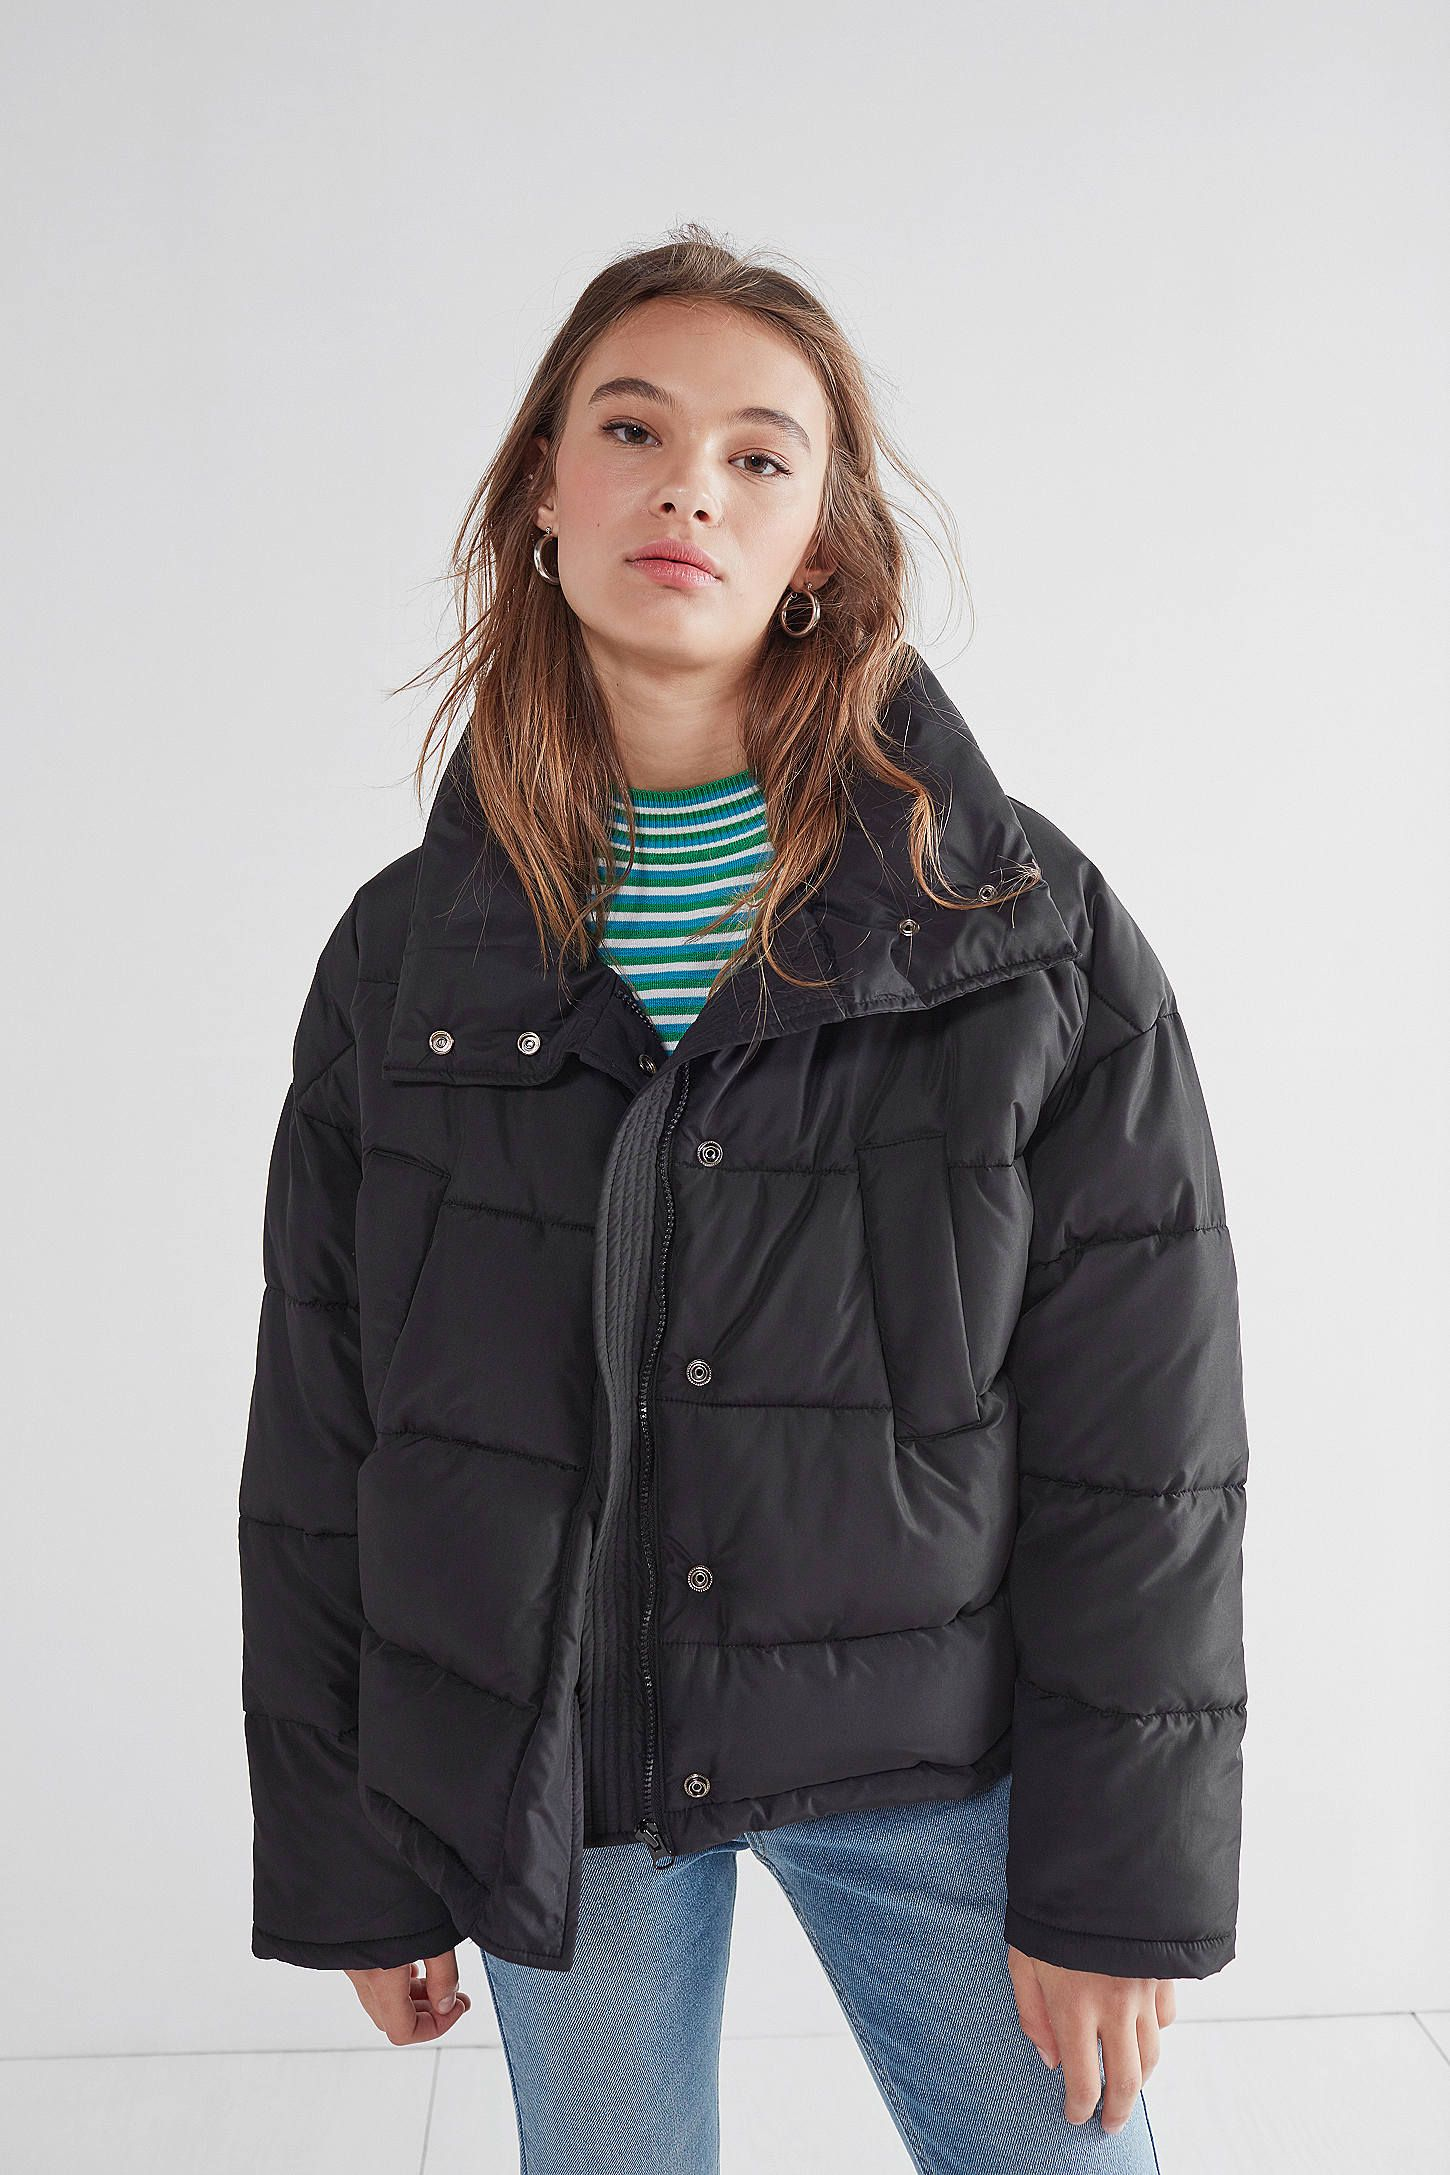 Shop Silence Noise Classic Puffer Jacket At Urban Outfitters Today We Carry All The Latest Styles Colors And Bra Puffer Jacket Black Jackets Puffer Jackets [ 2175 x 1450 Pixel ]